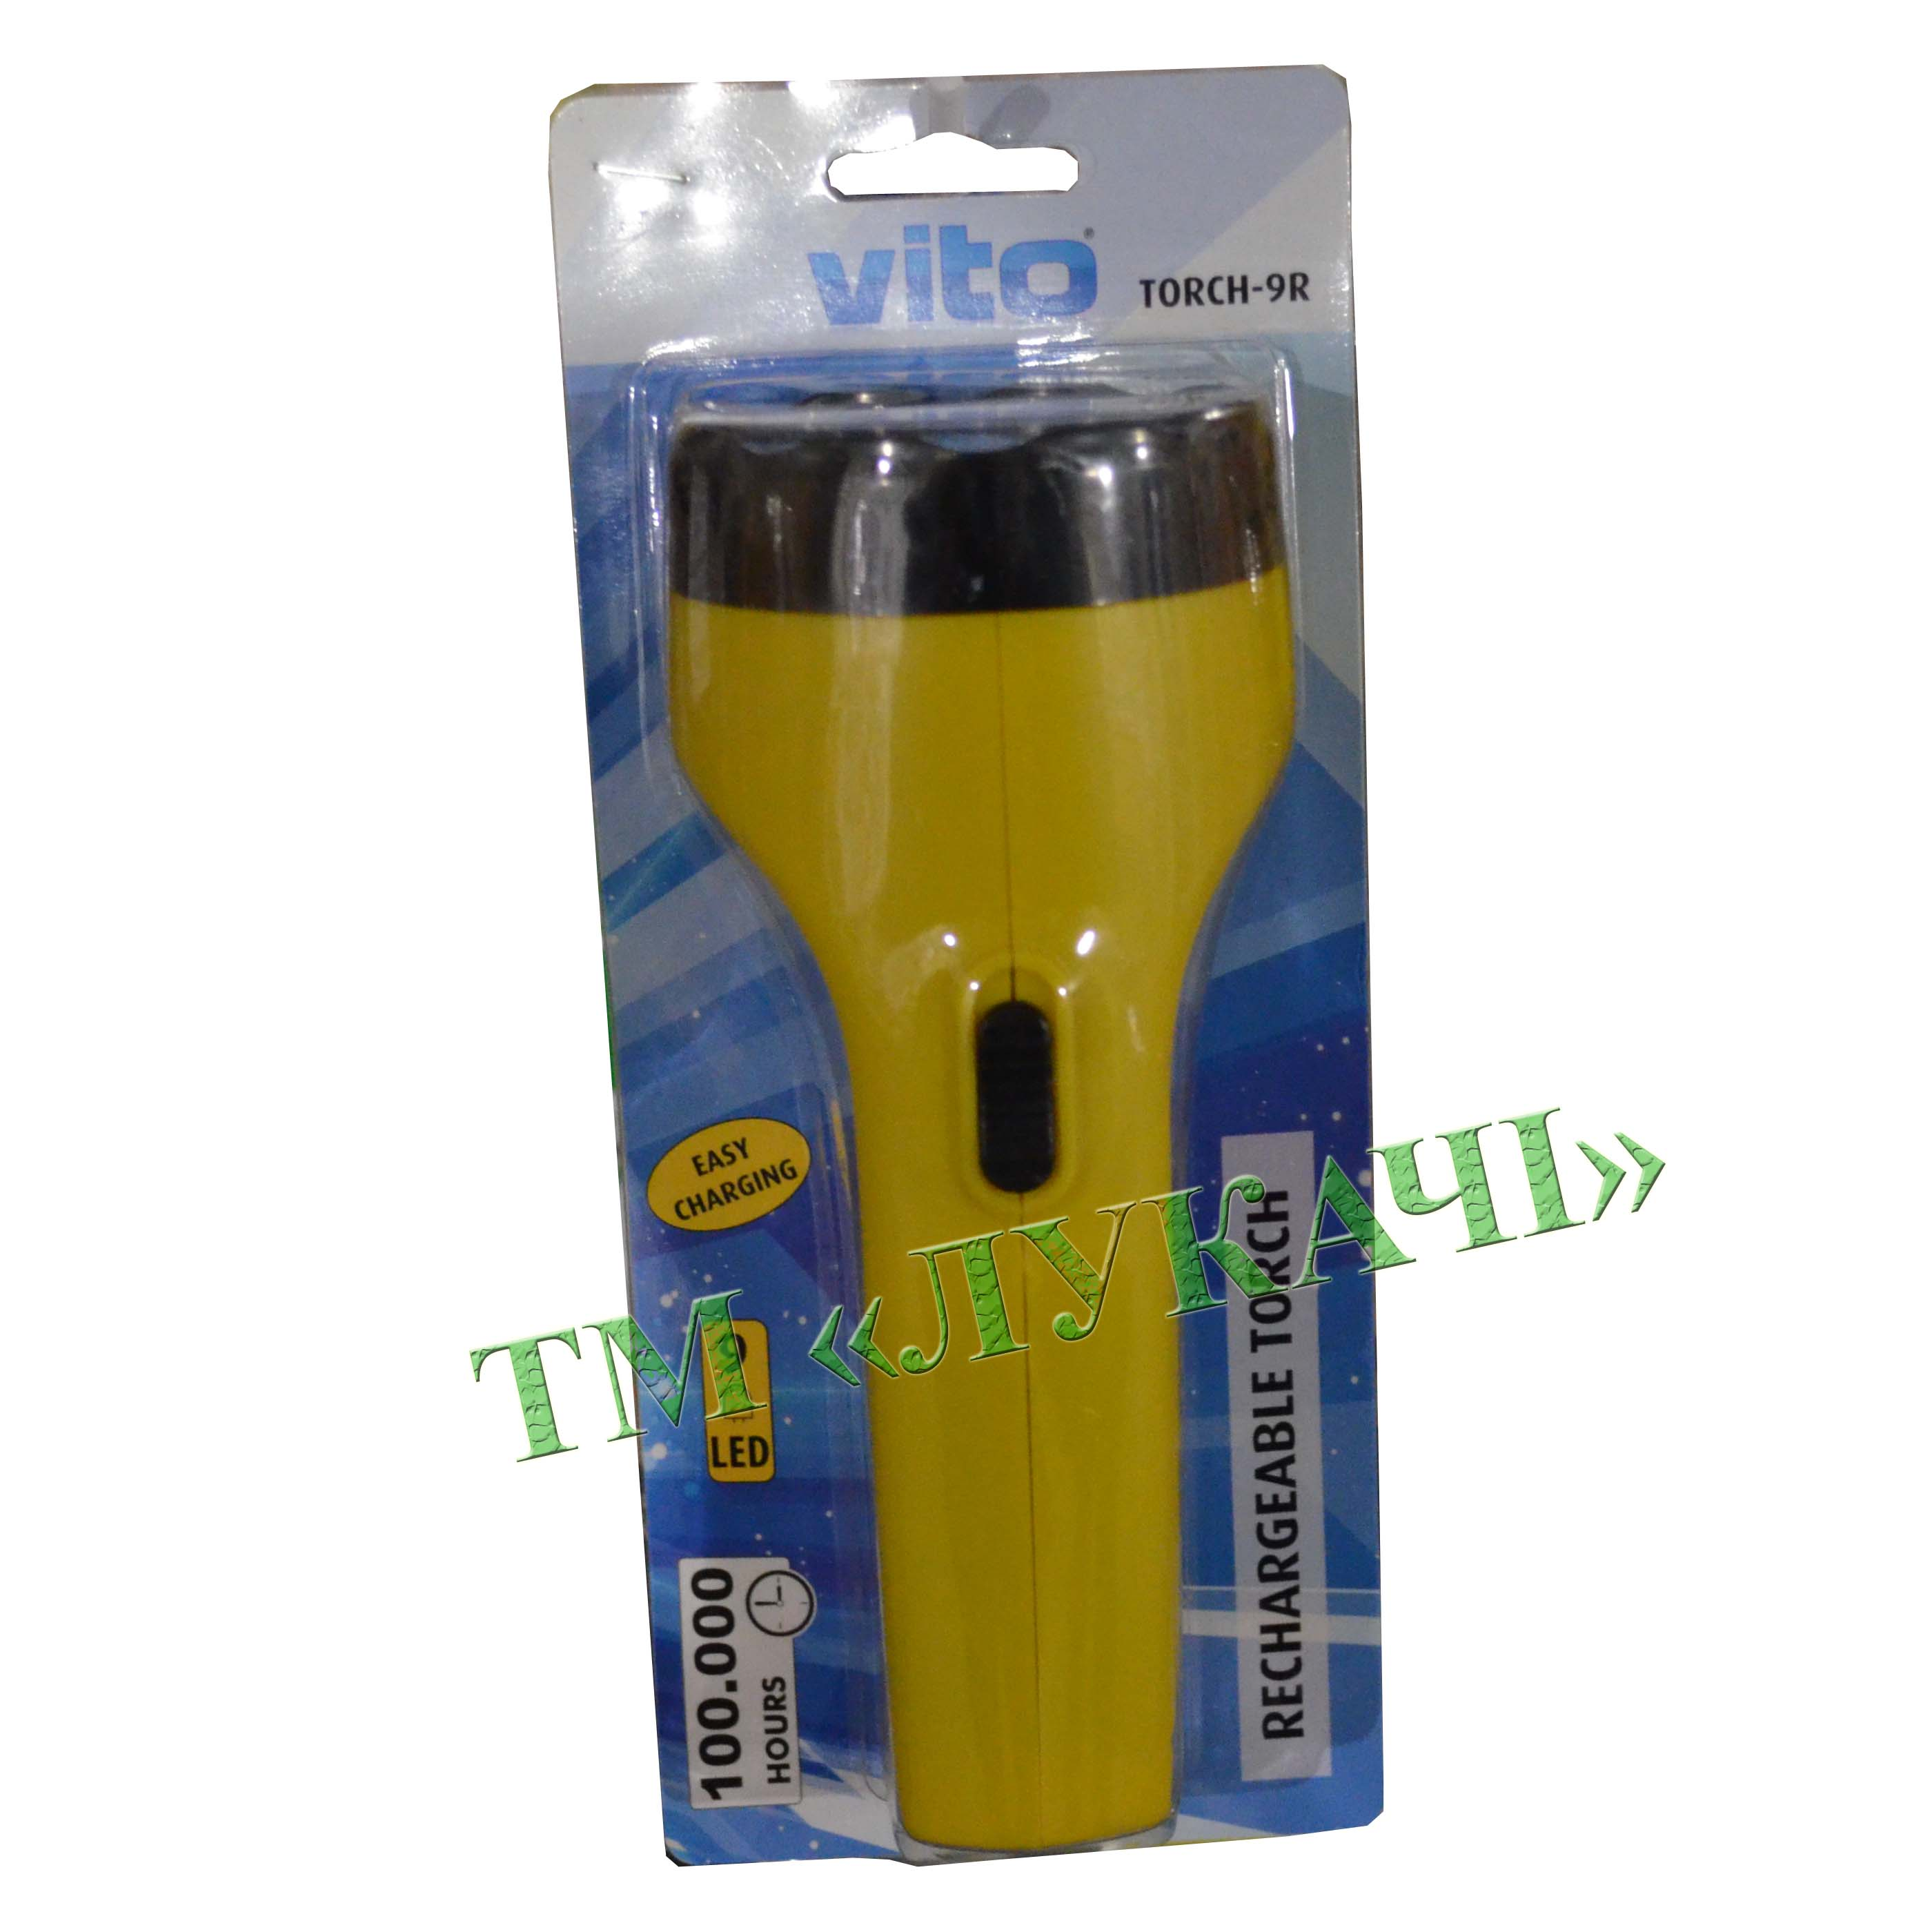 Фонар  VITO Torch-9R 9 PowerLed 4V 900mAh 4-16год. 5000240